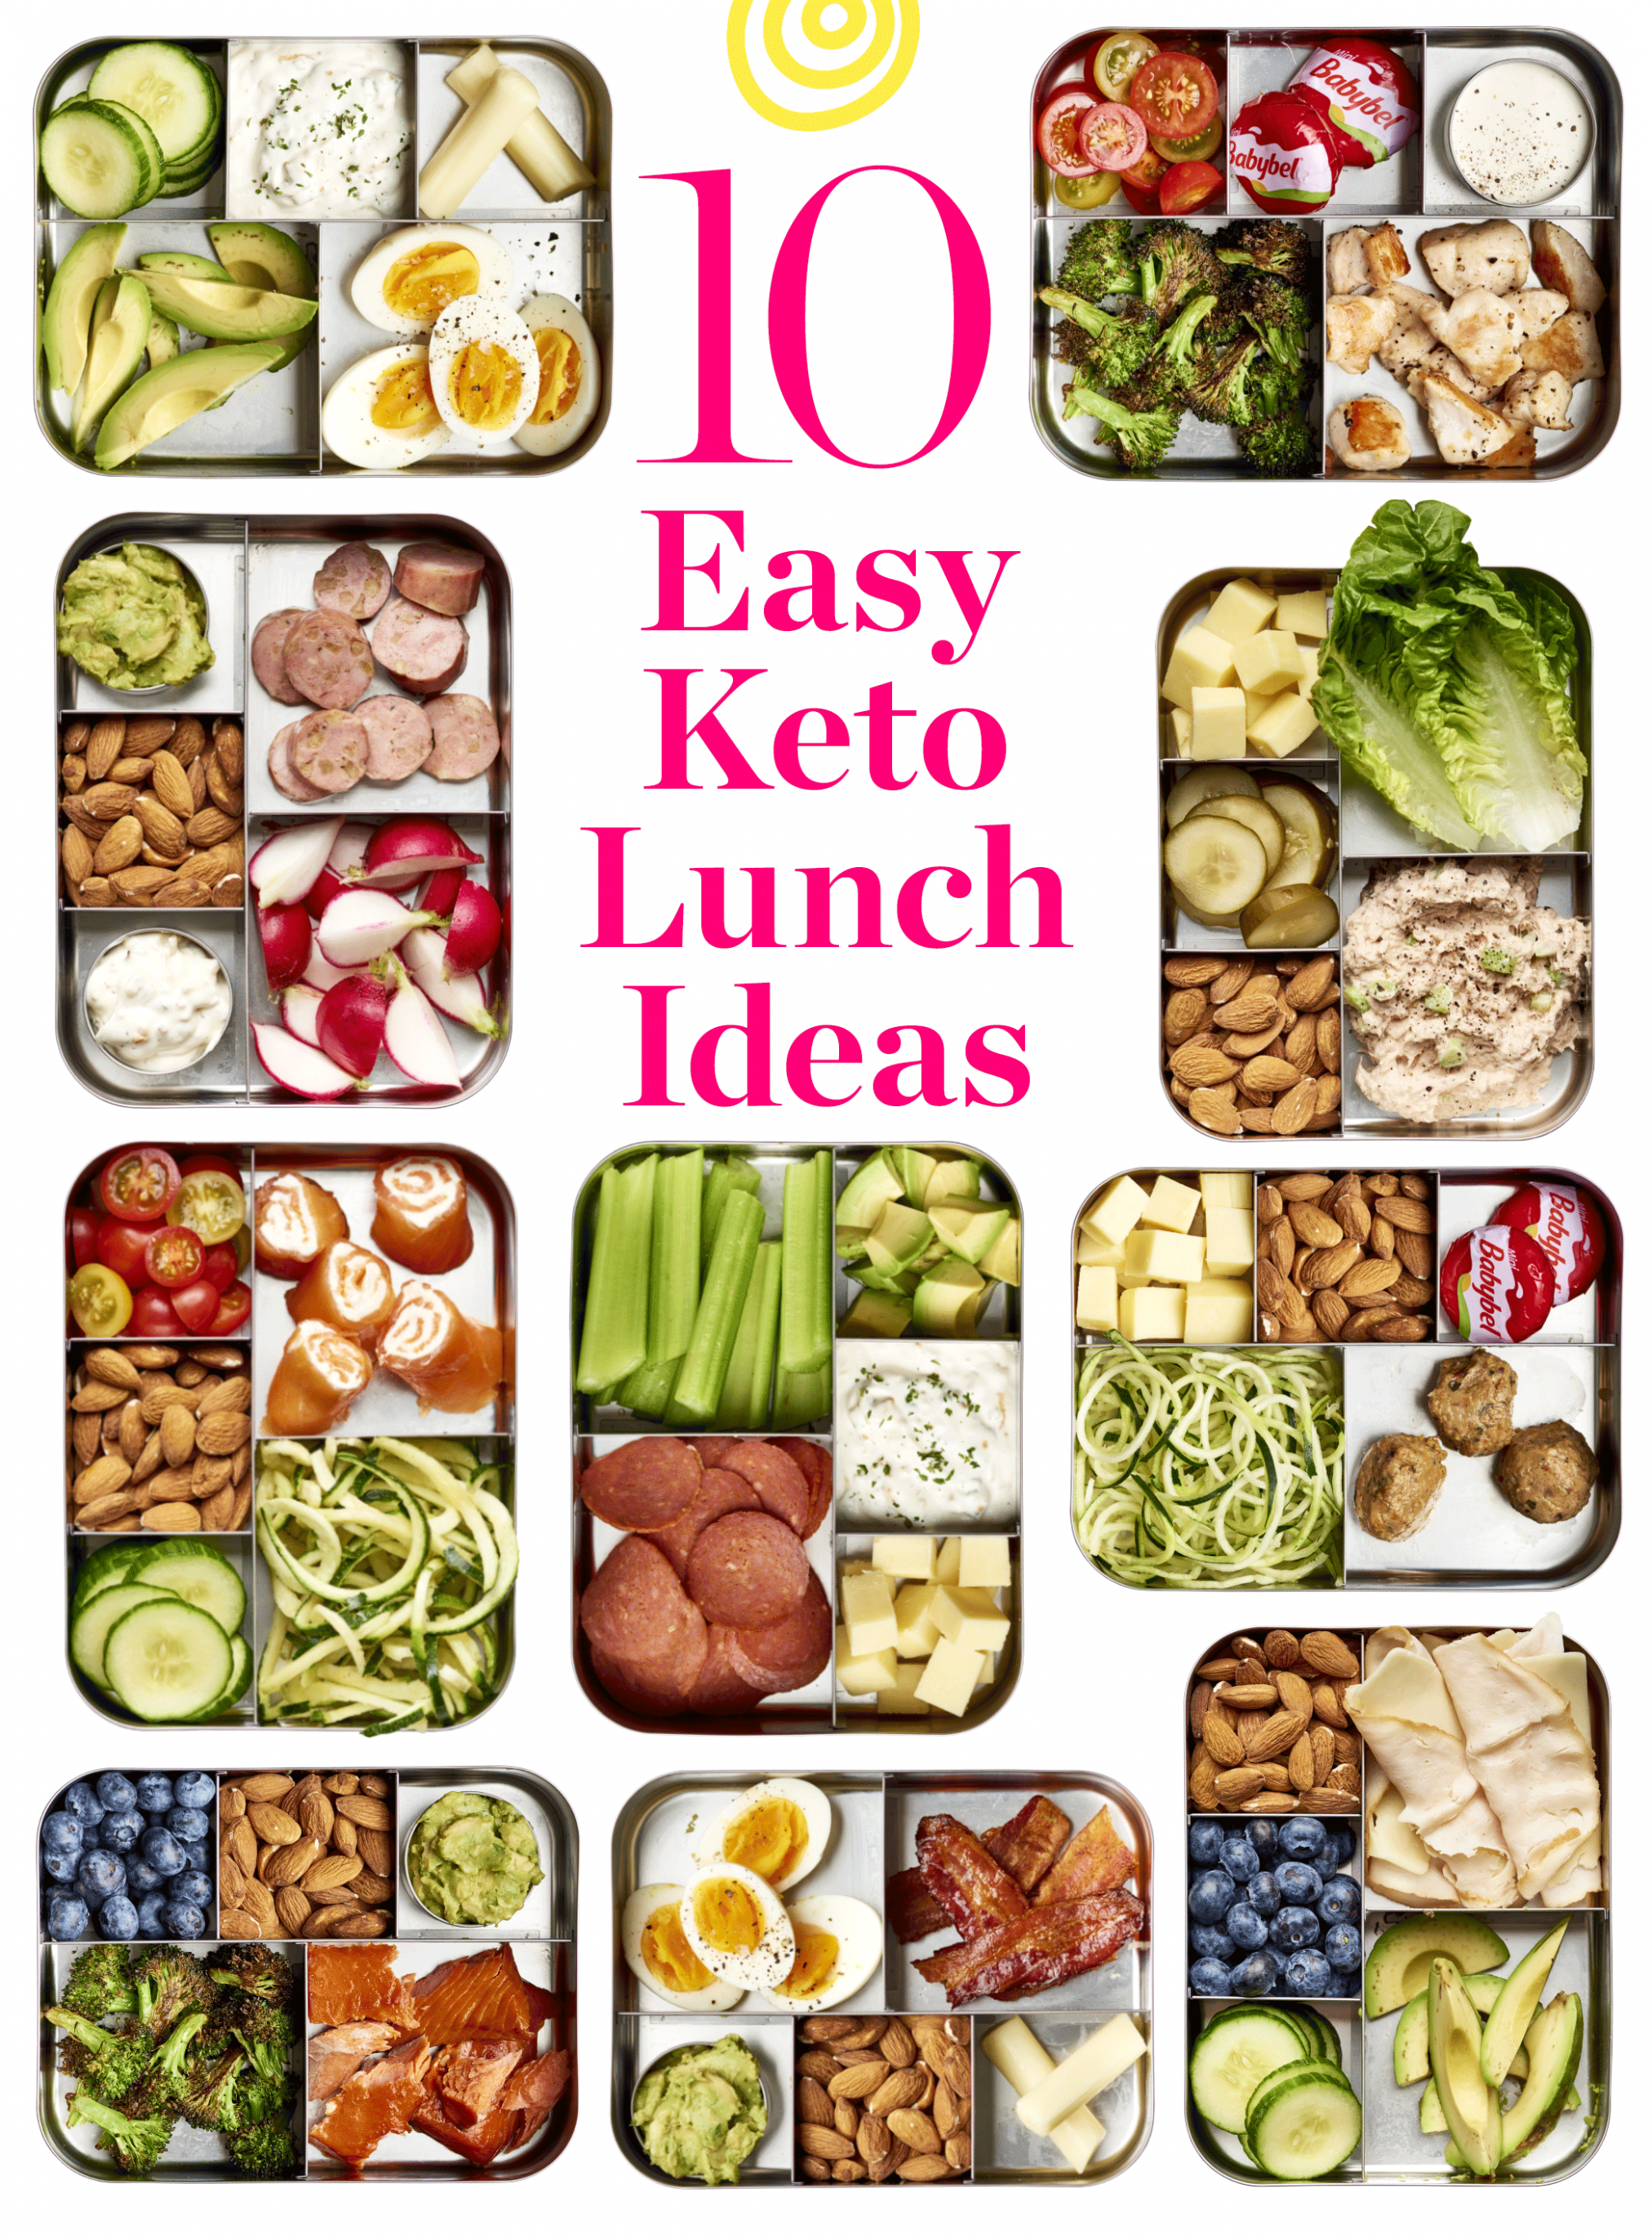 11 Easy Keto Lunch Ideas with Net Carb Counts | Kitchn - Simple Recipes Lunch Ideas